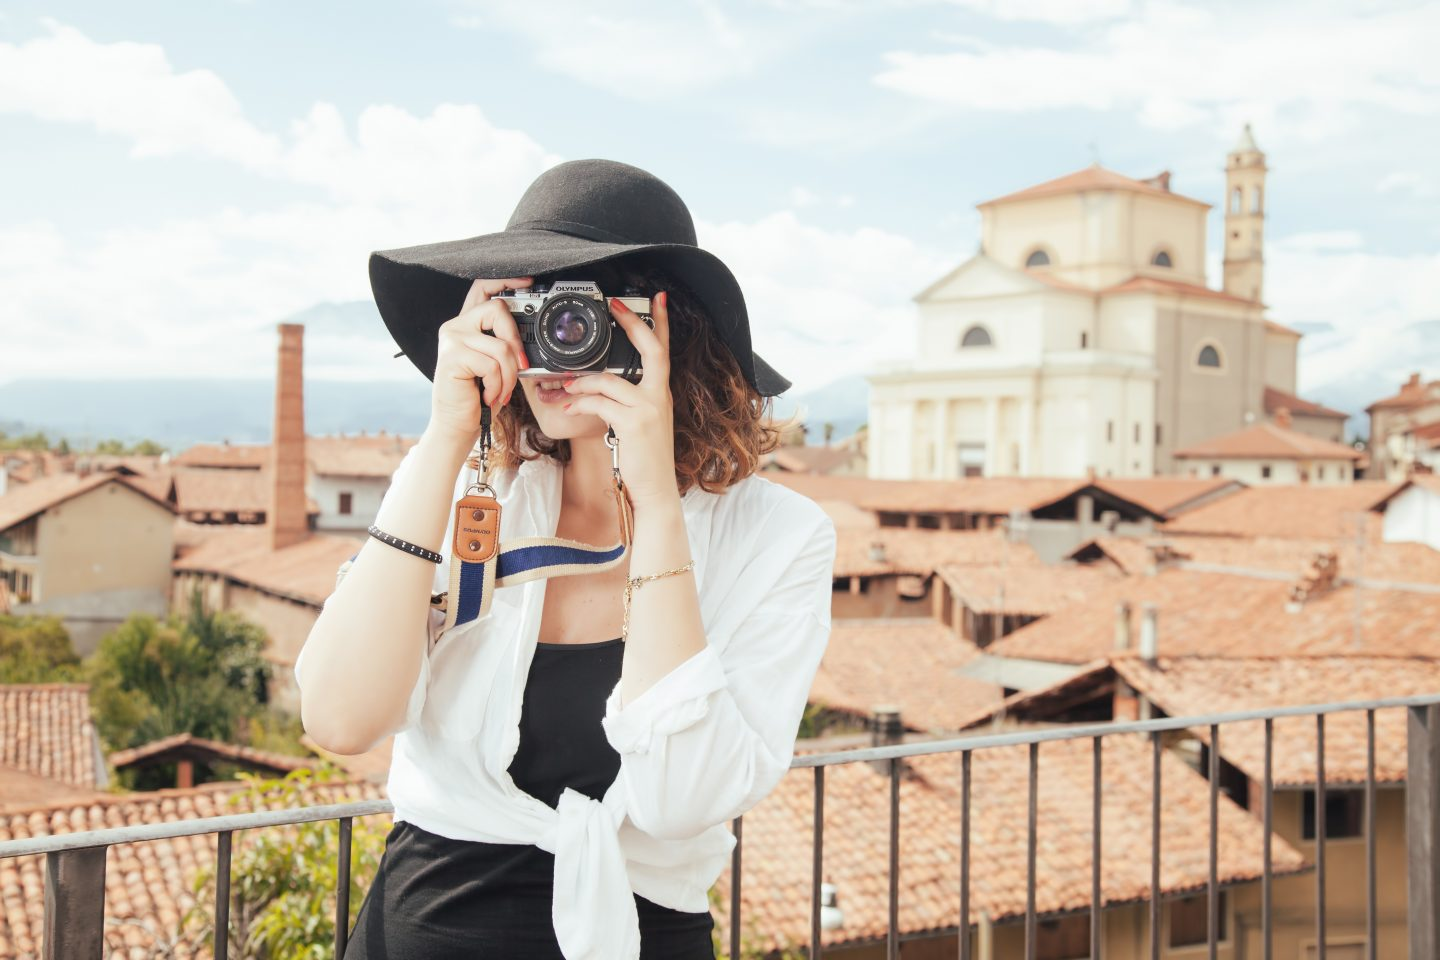 Cheap Date Ideas Explore Your City Girl Analog Camera